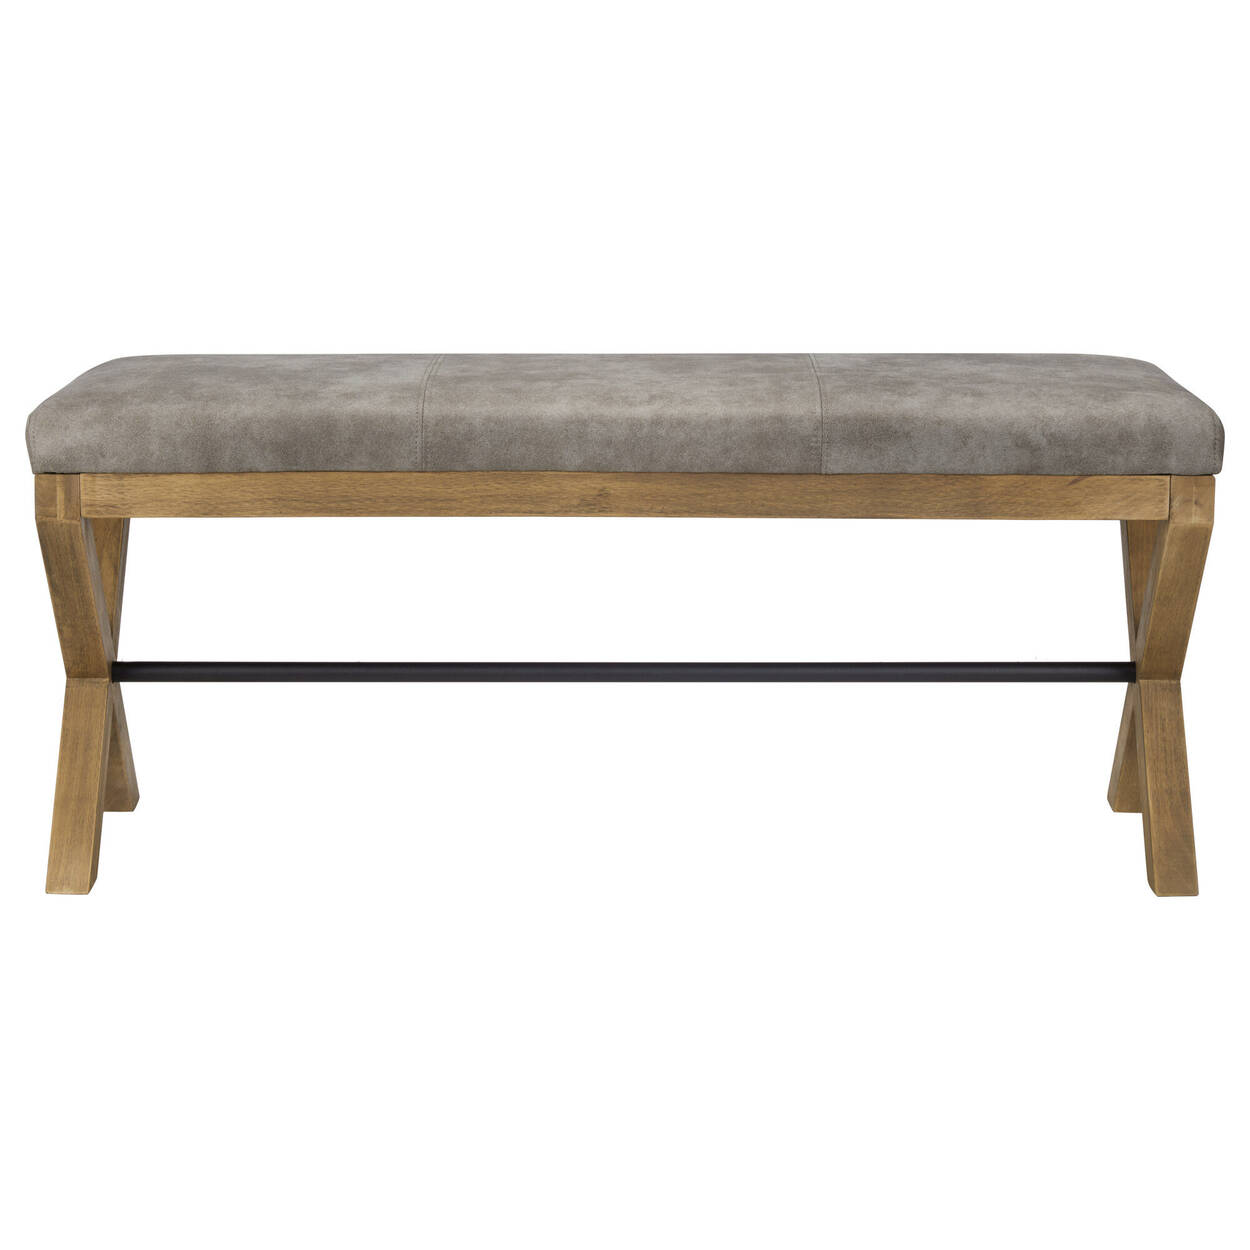 Textured Faux Leather and Wood Bench